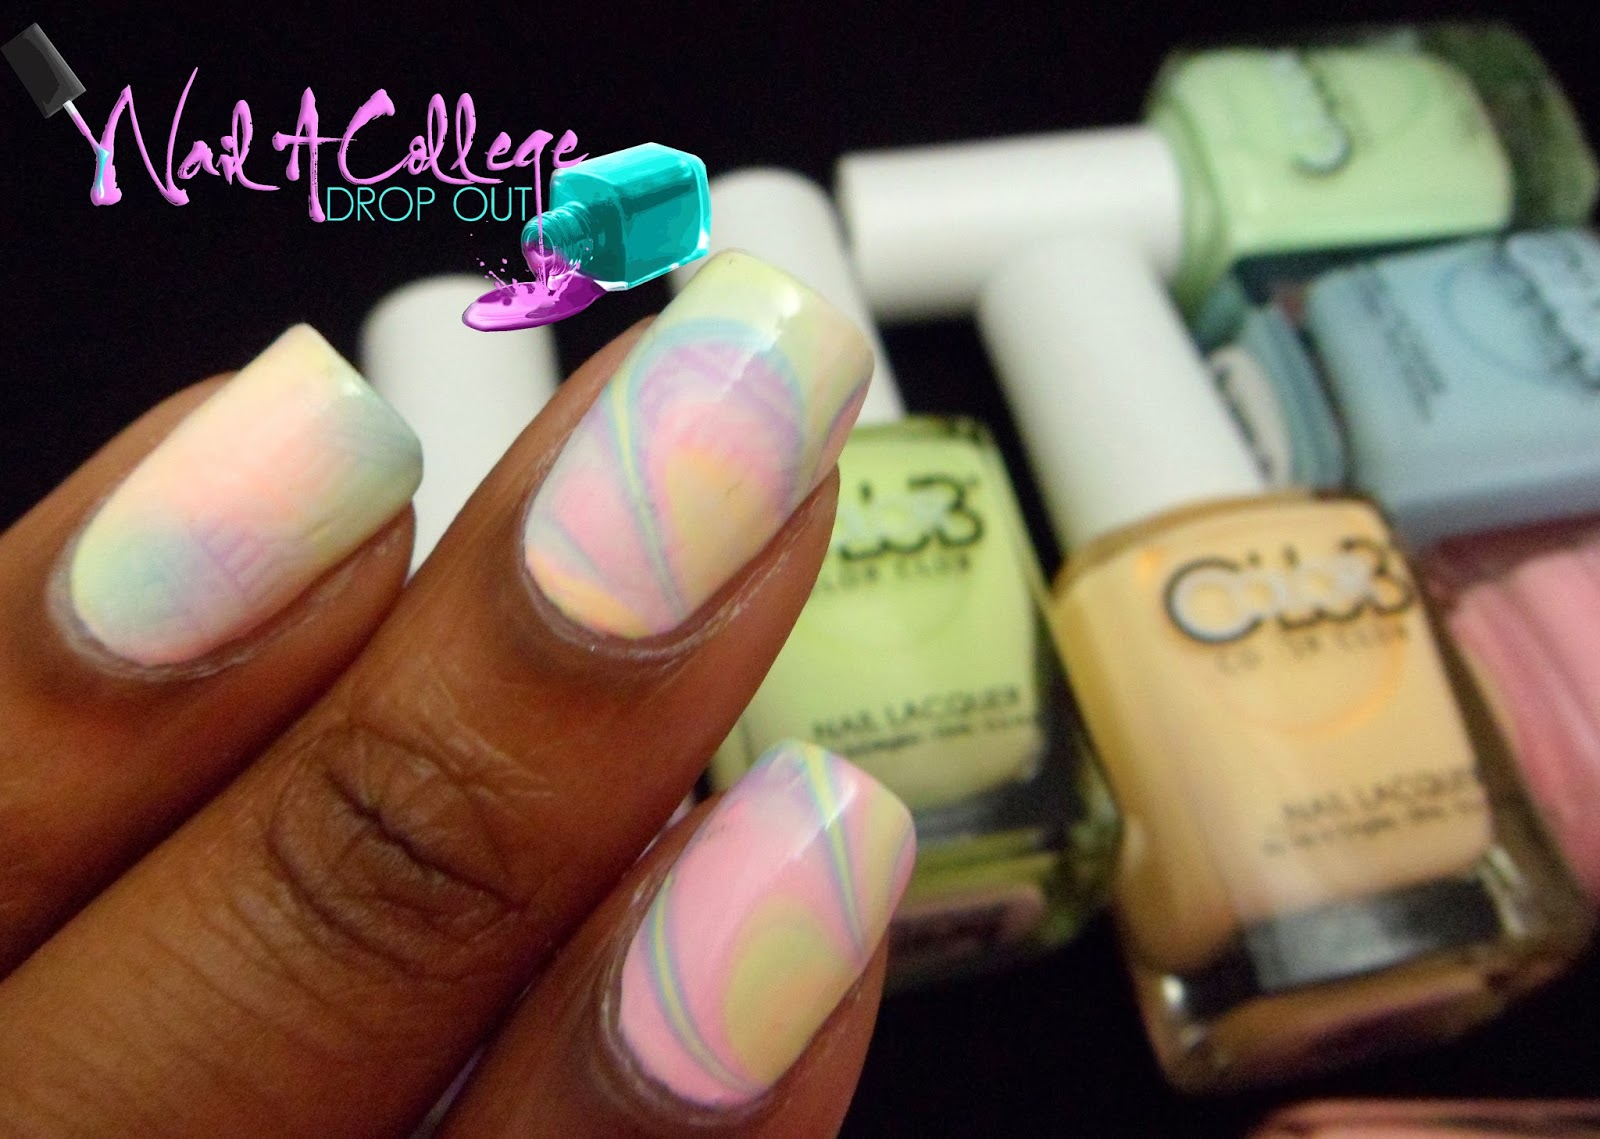 Nail A College Drop Out: Color Club Poptastic Pastel Neon Nail Art